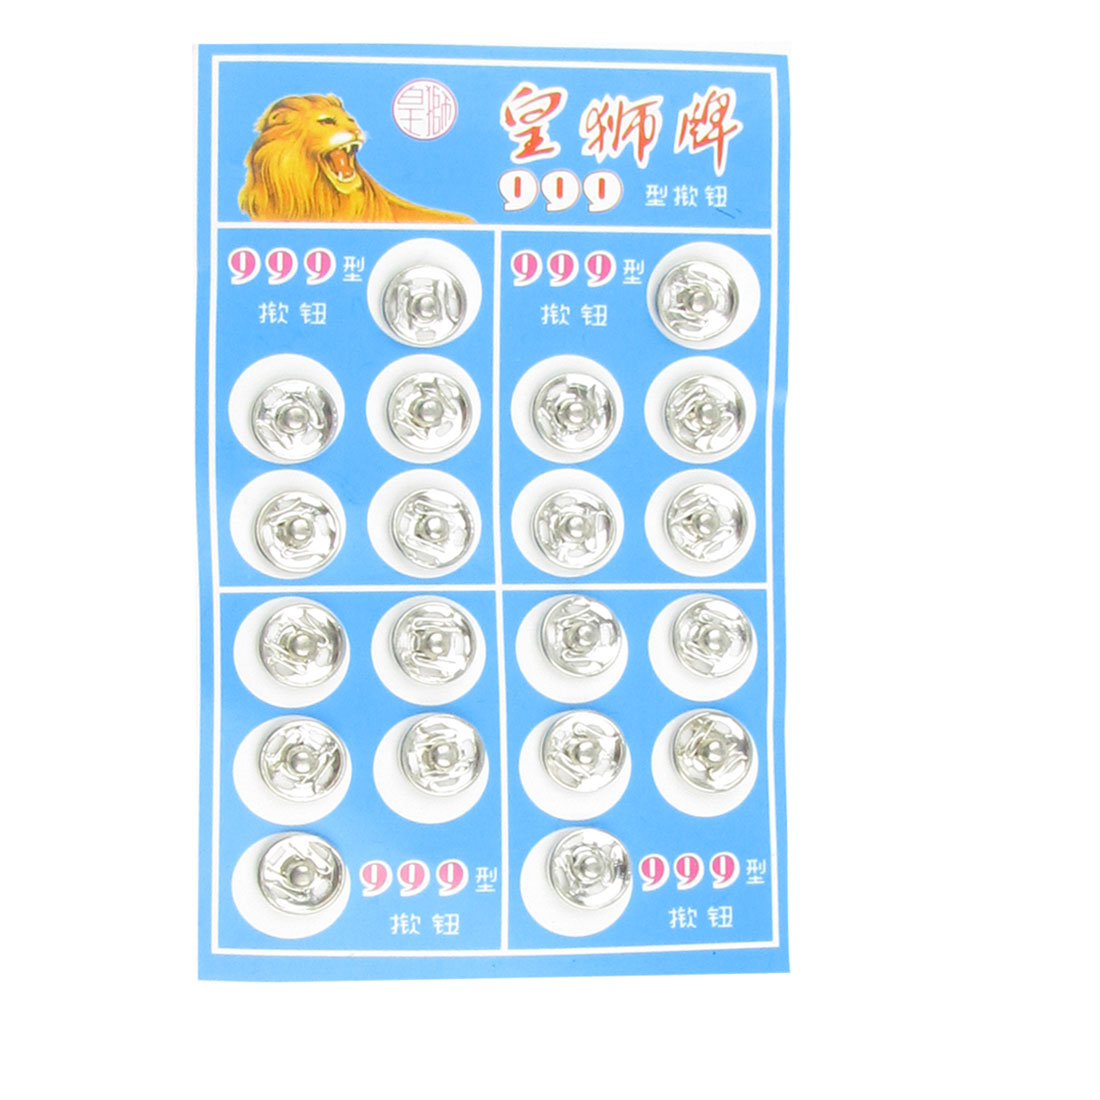 20 Pcs Silver Tone Metallic Clothes Trousers Press Button Fastener